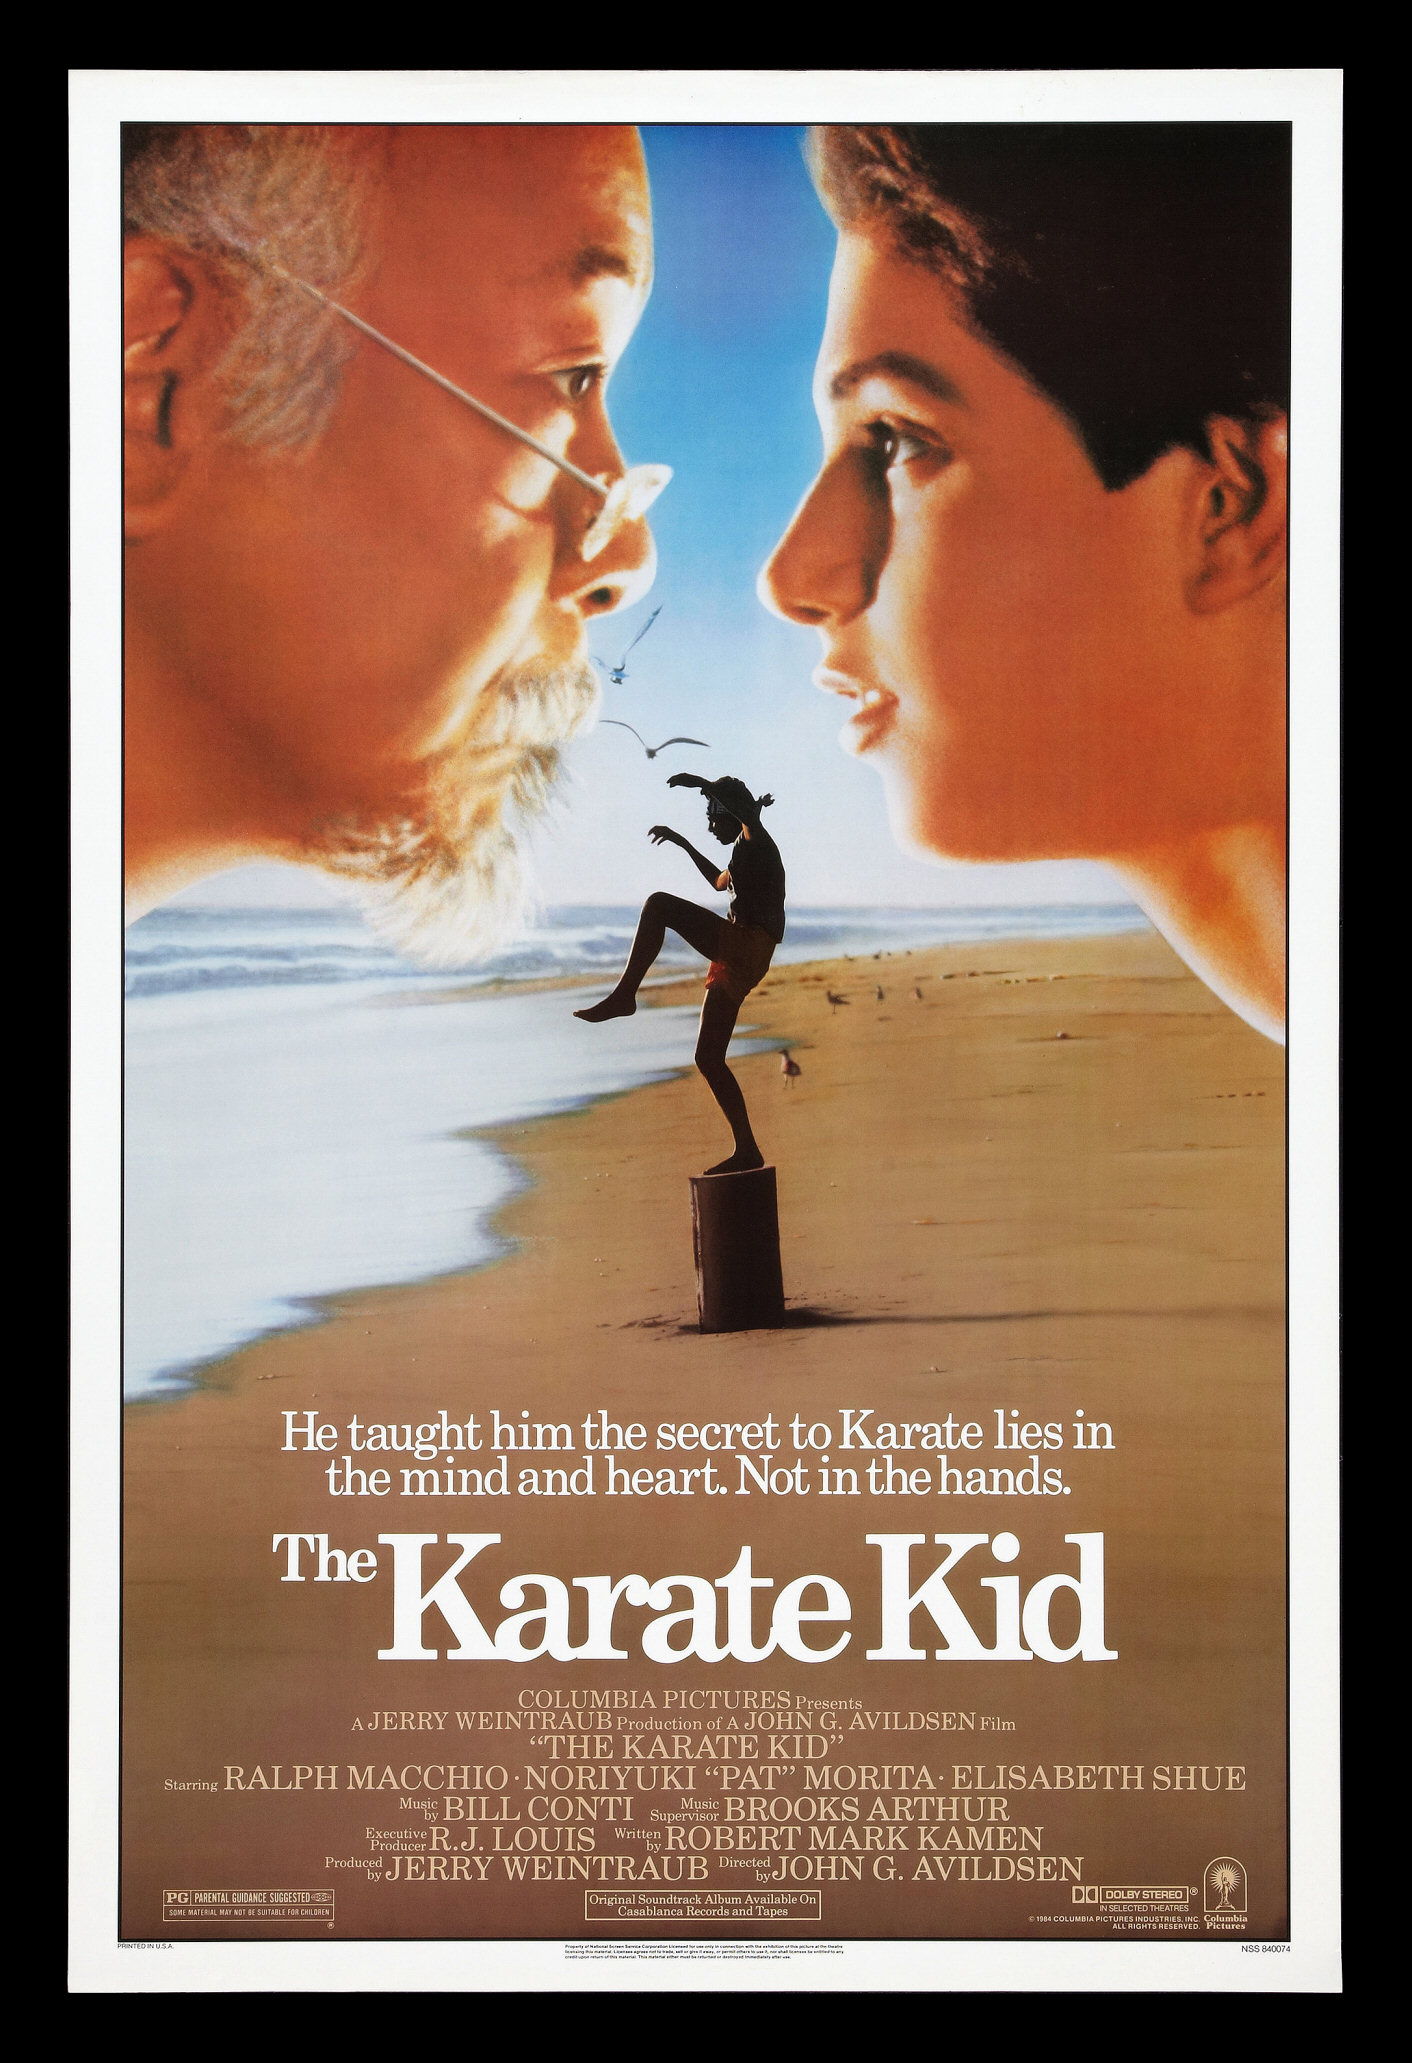 Karate kid the movie poster film poster one sheet